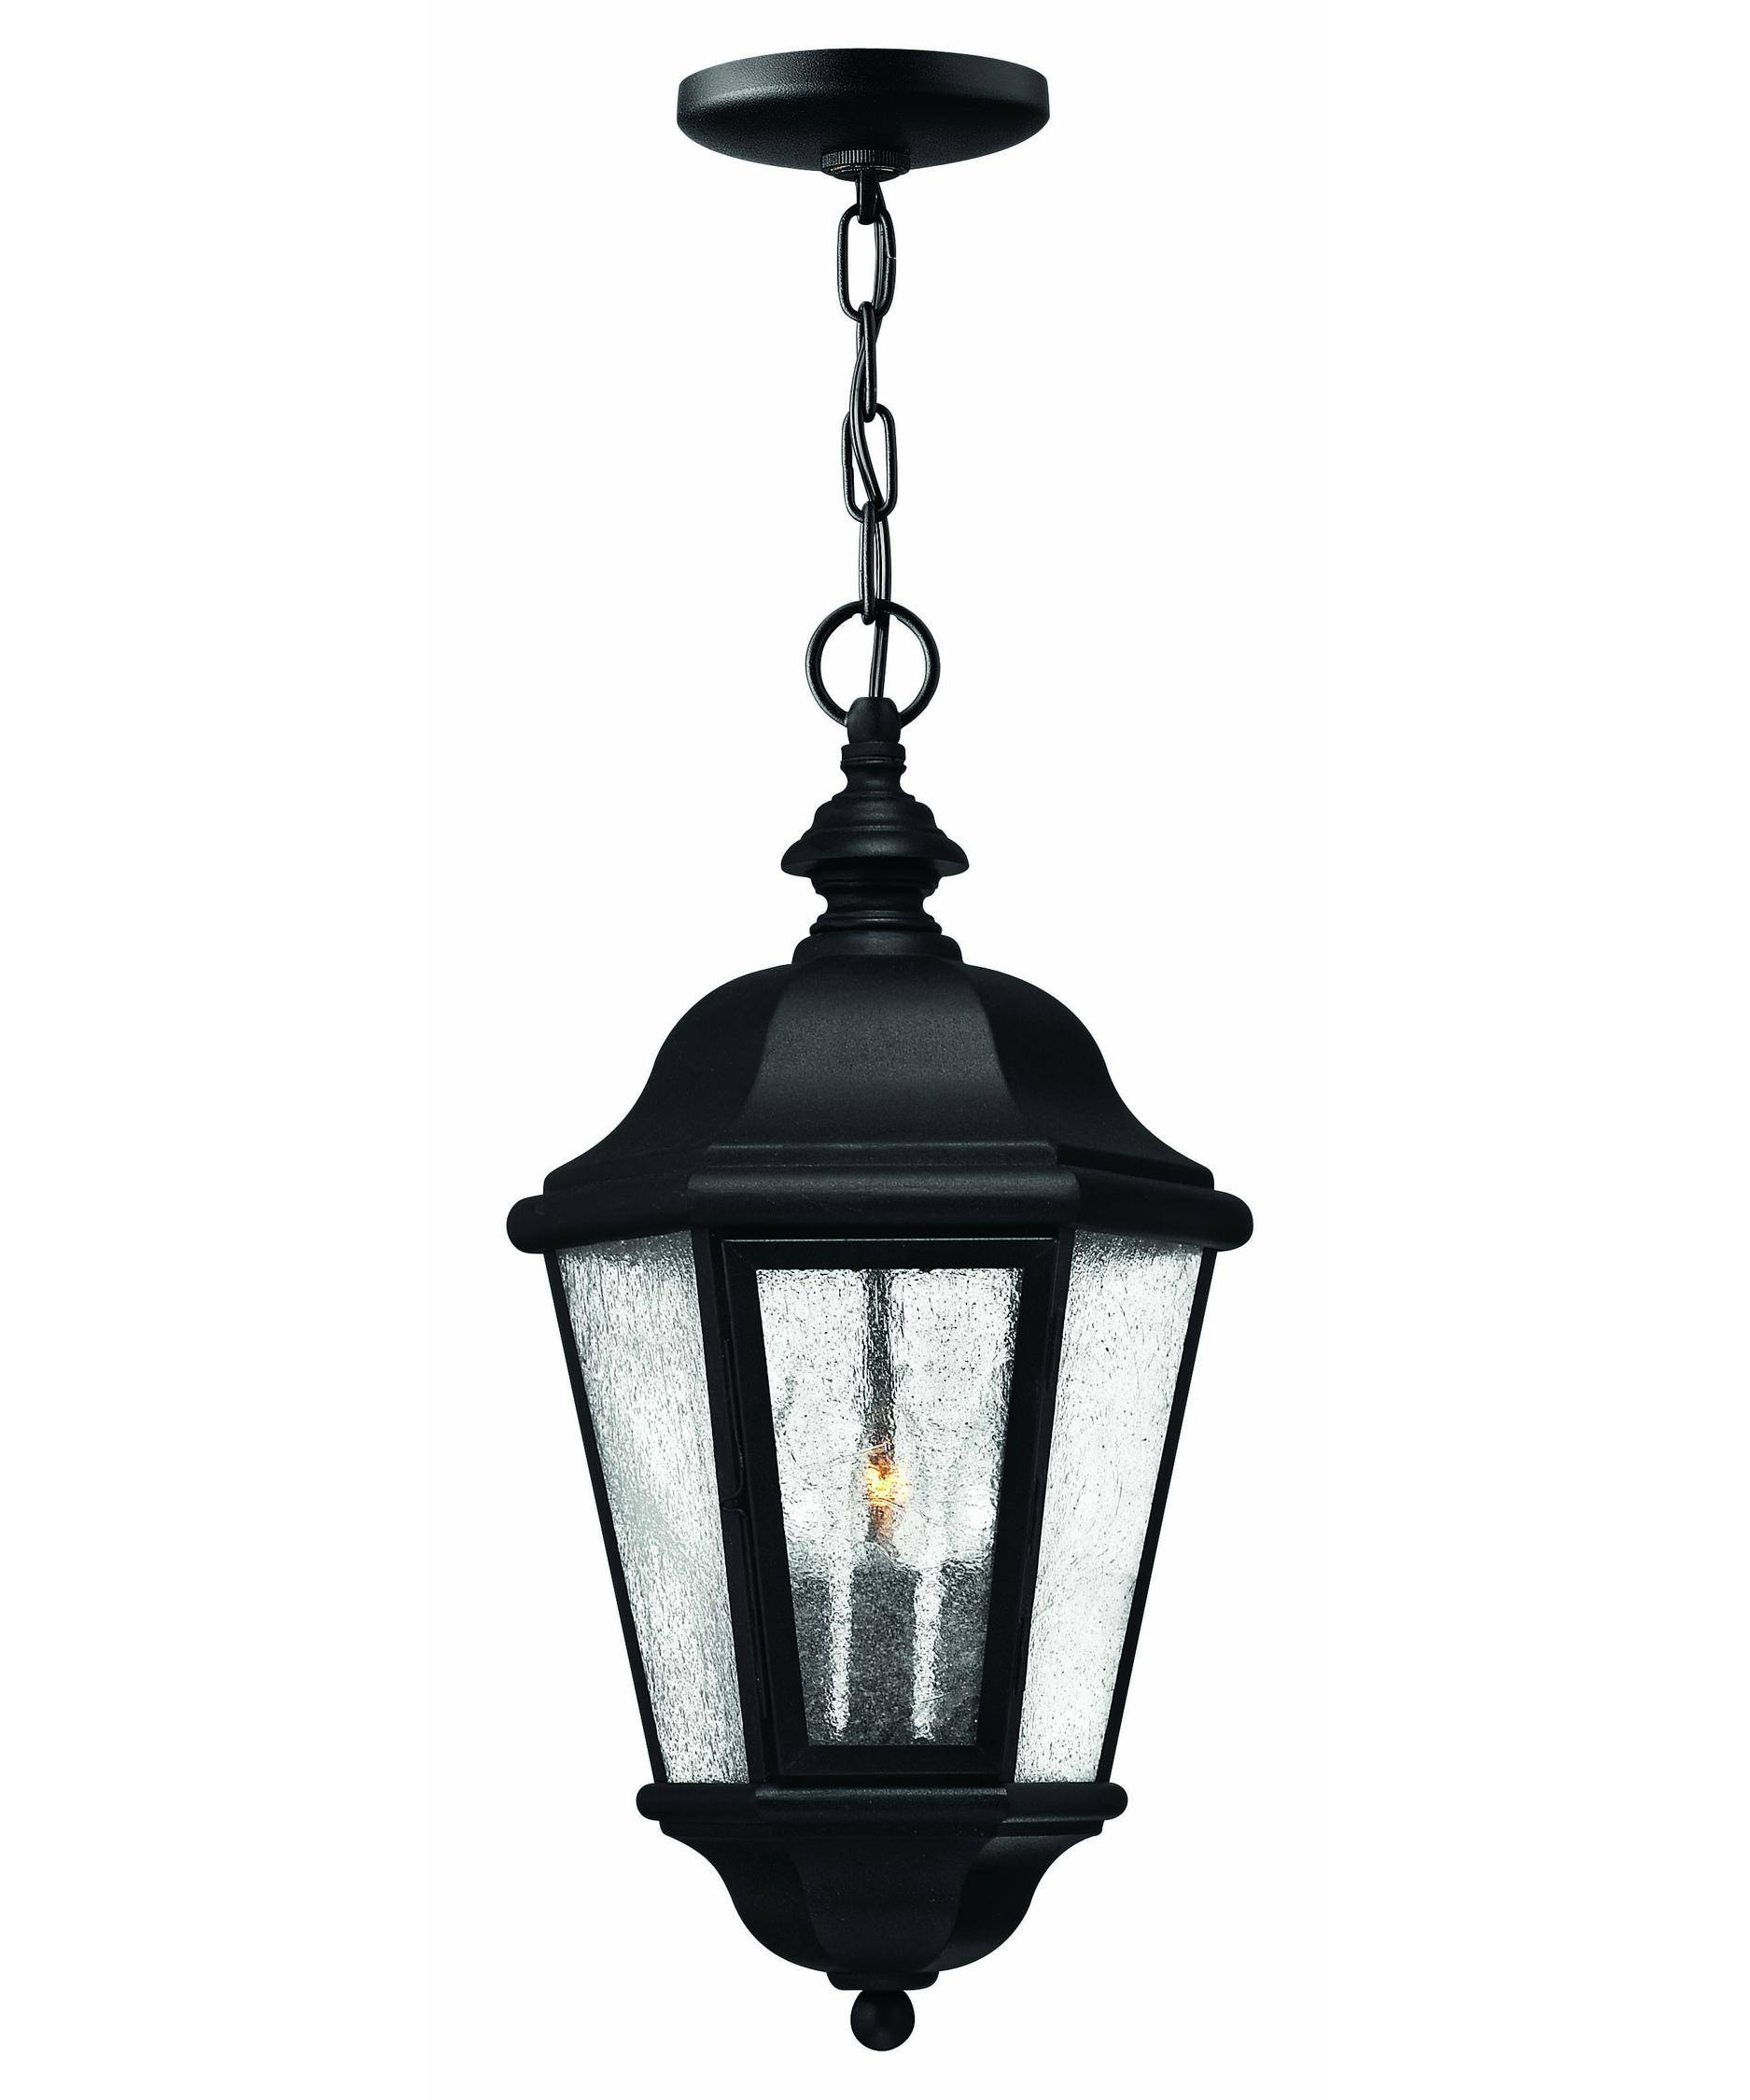 Outdoor Hanging Pendant Lights – Baby Exit Intended For Outdoor Pendant Lighting (View 5 of 15)